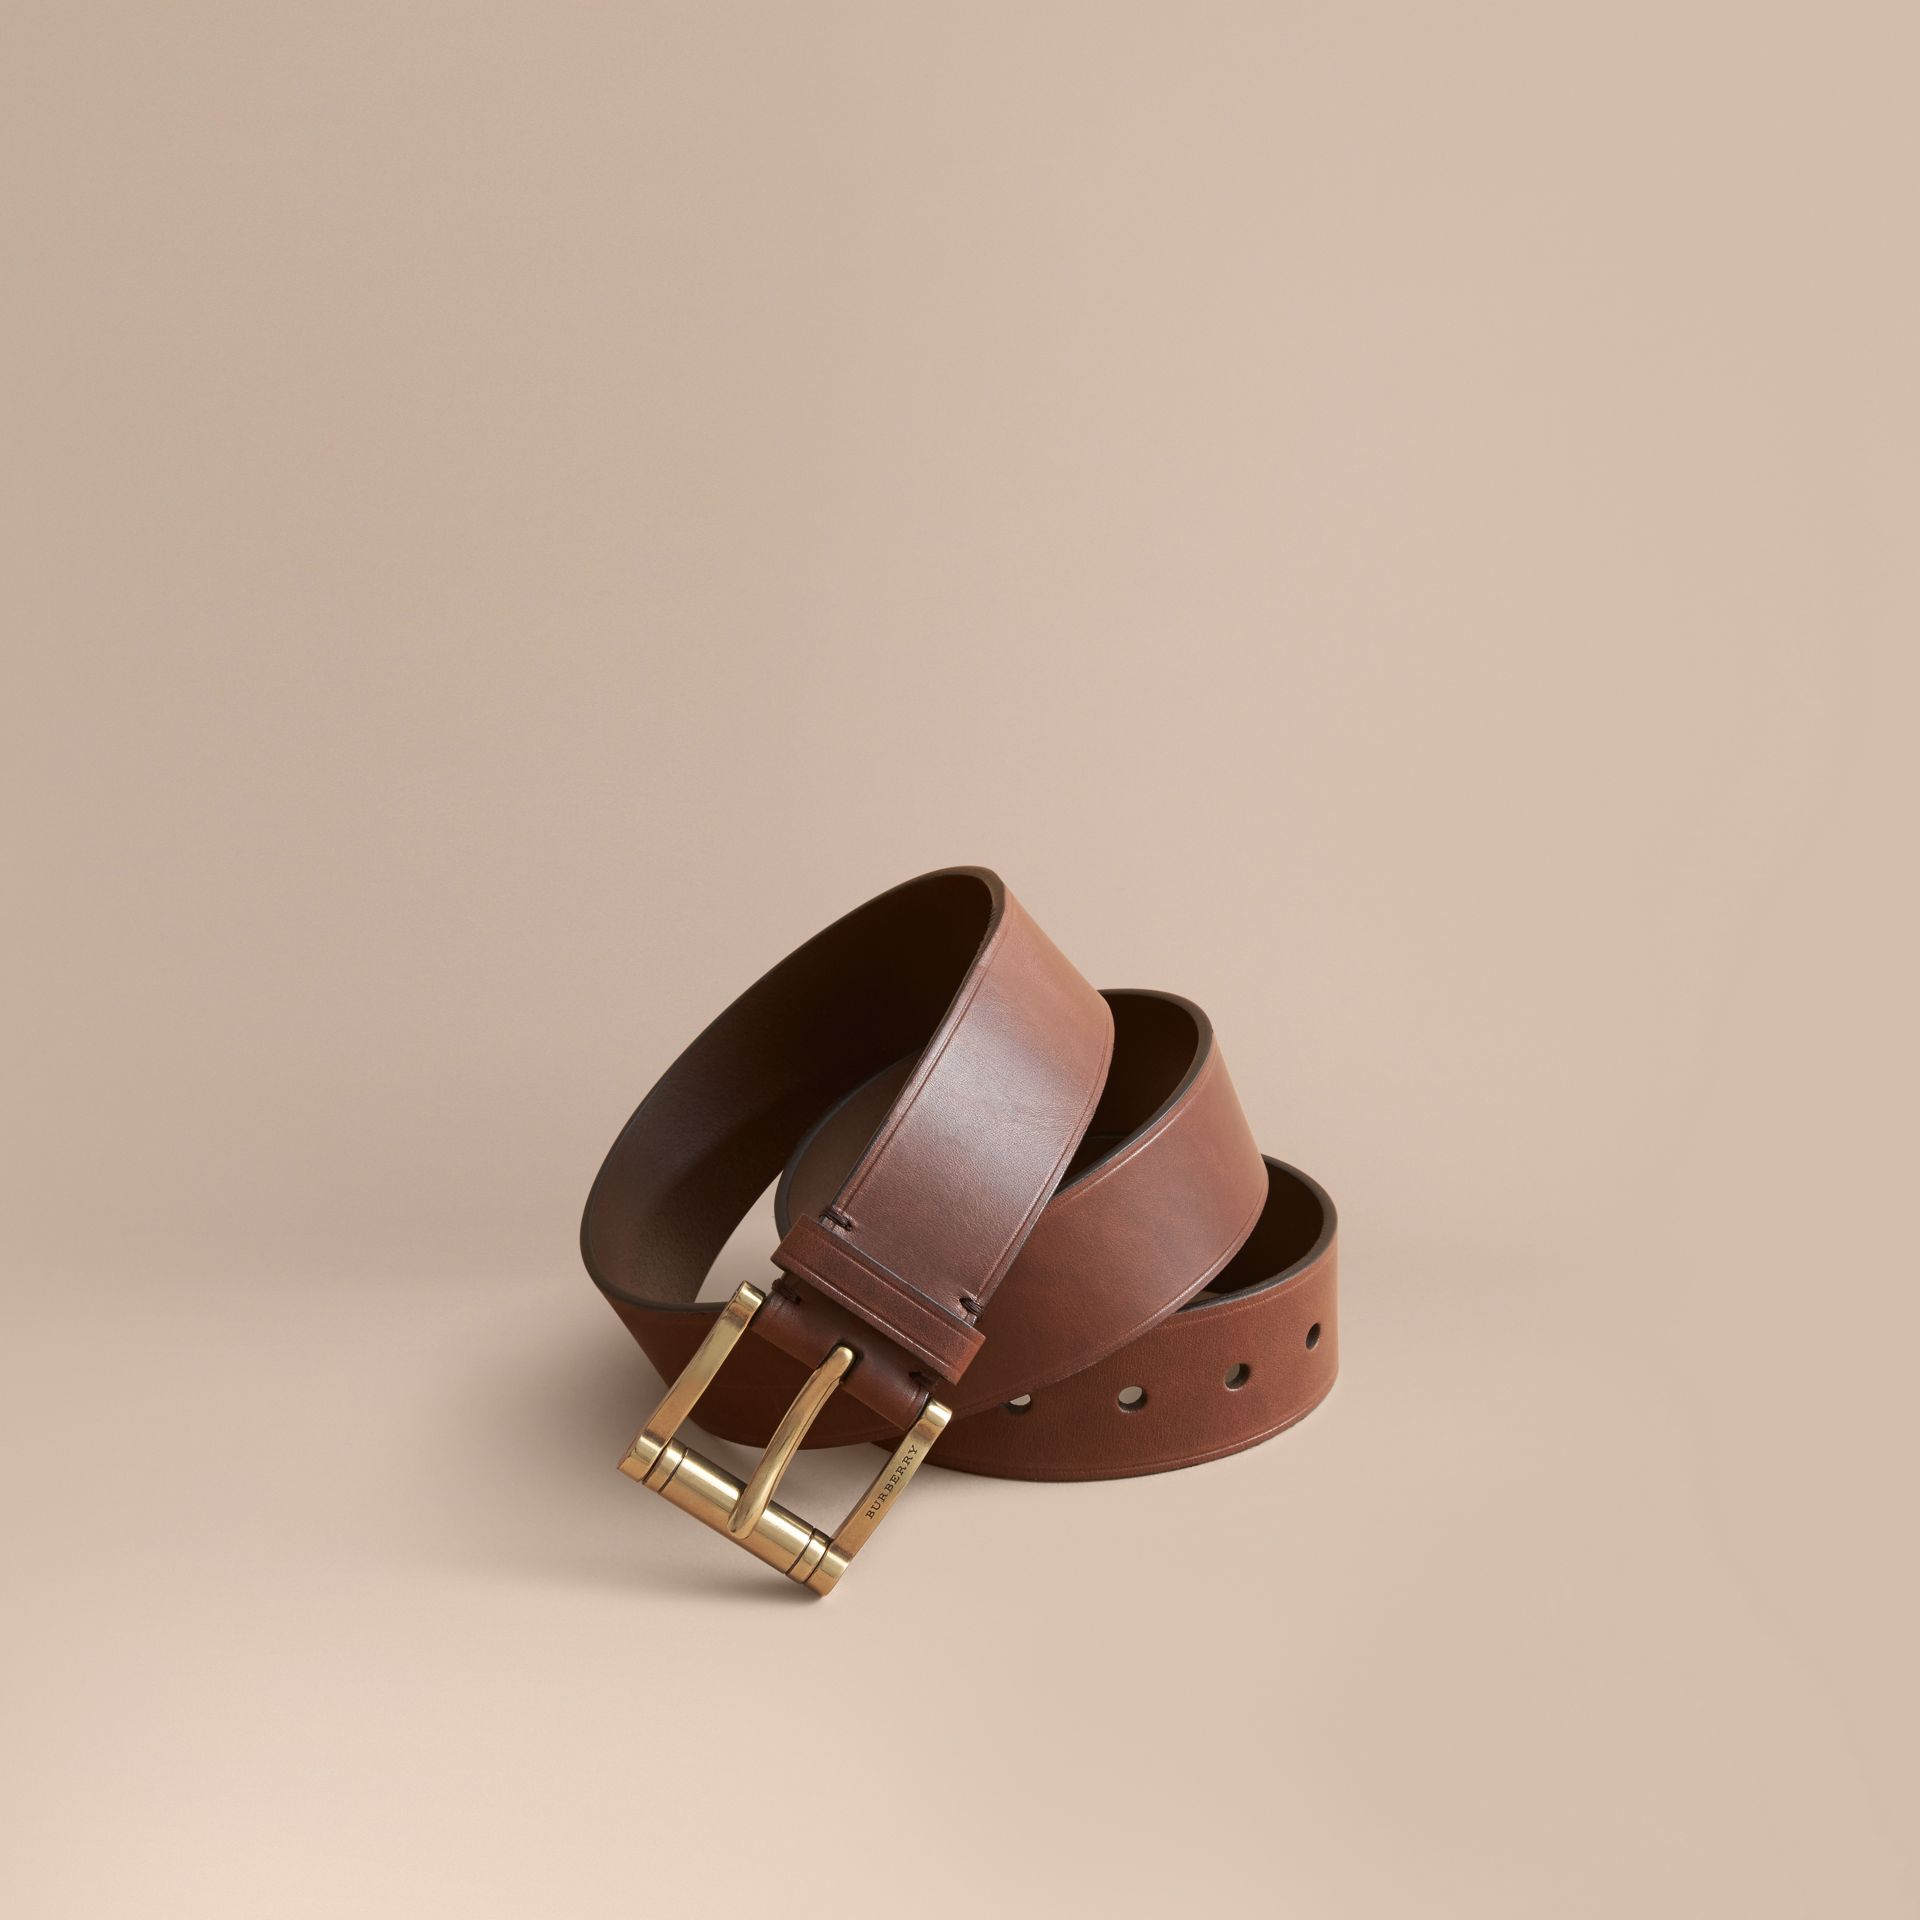 Brass Buckle Leather Belt in Auburn - Men | Burberry United States - gallery image 1